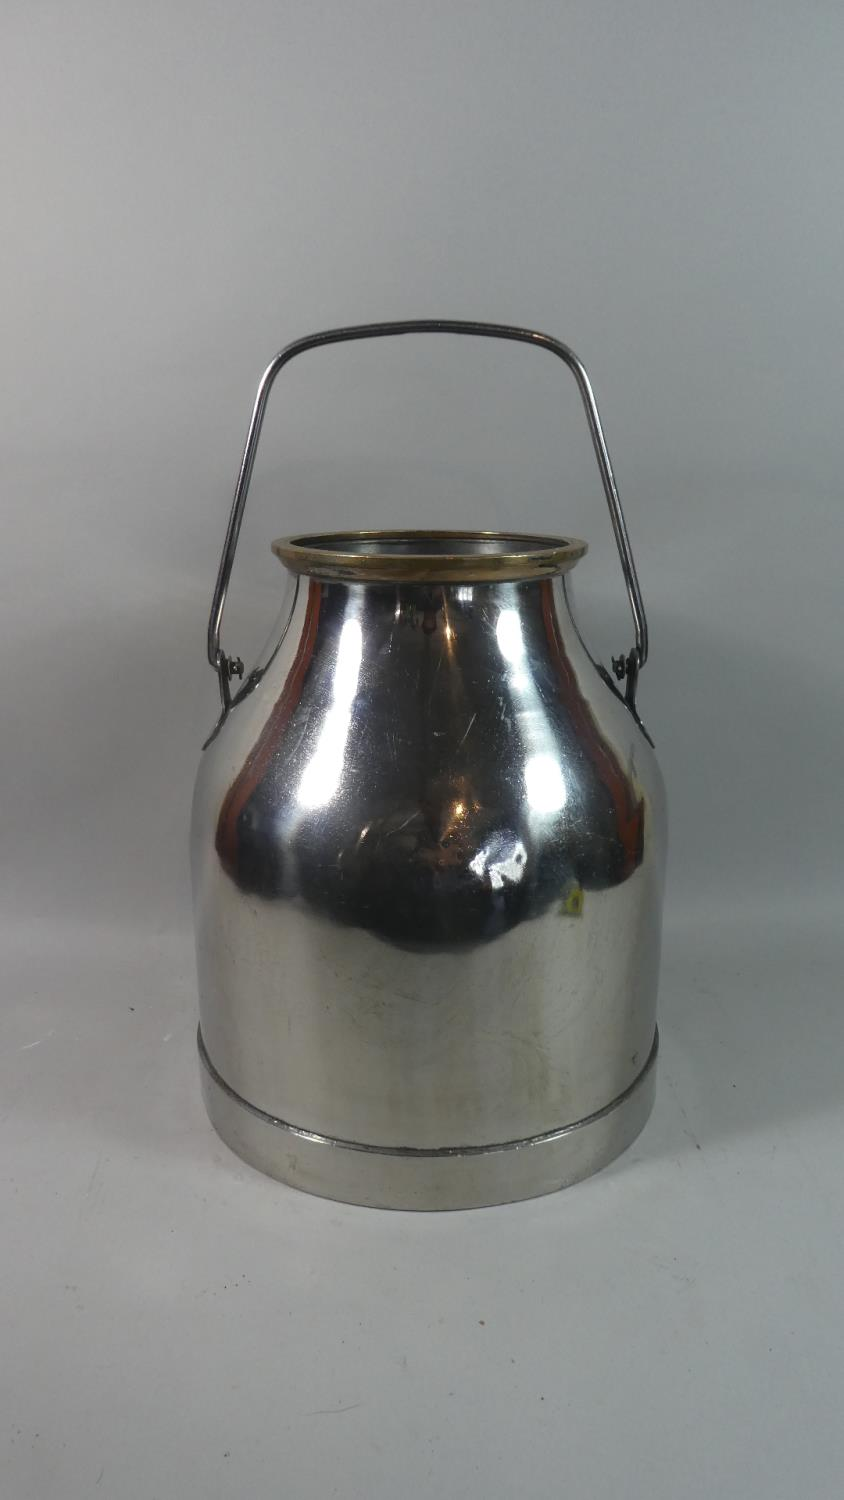 Lot 444 - A Polished Stainless Steel Milk Churn, 37cm High